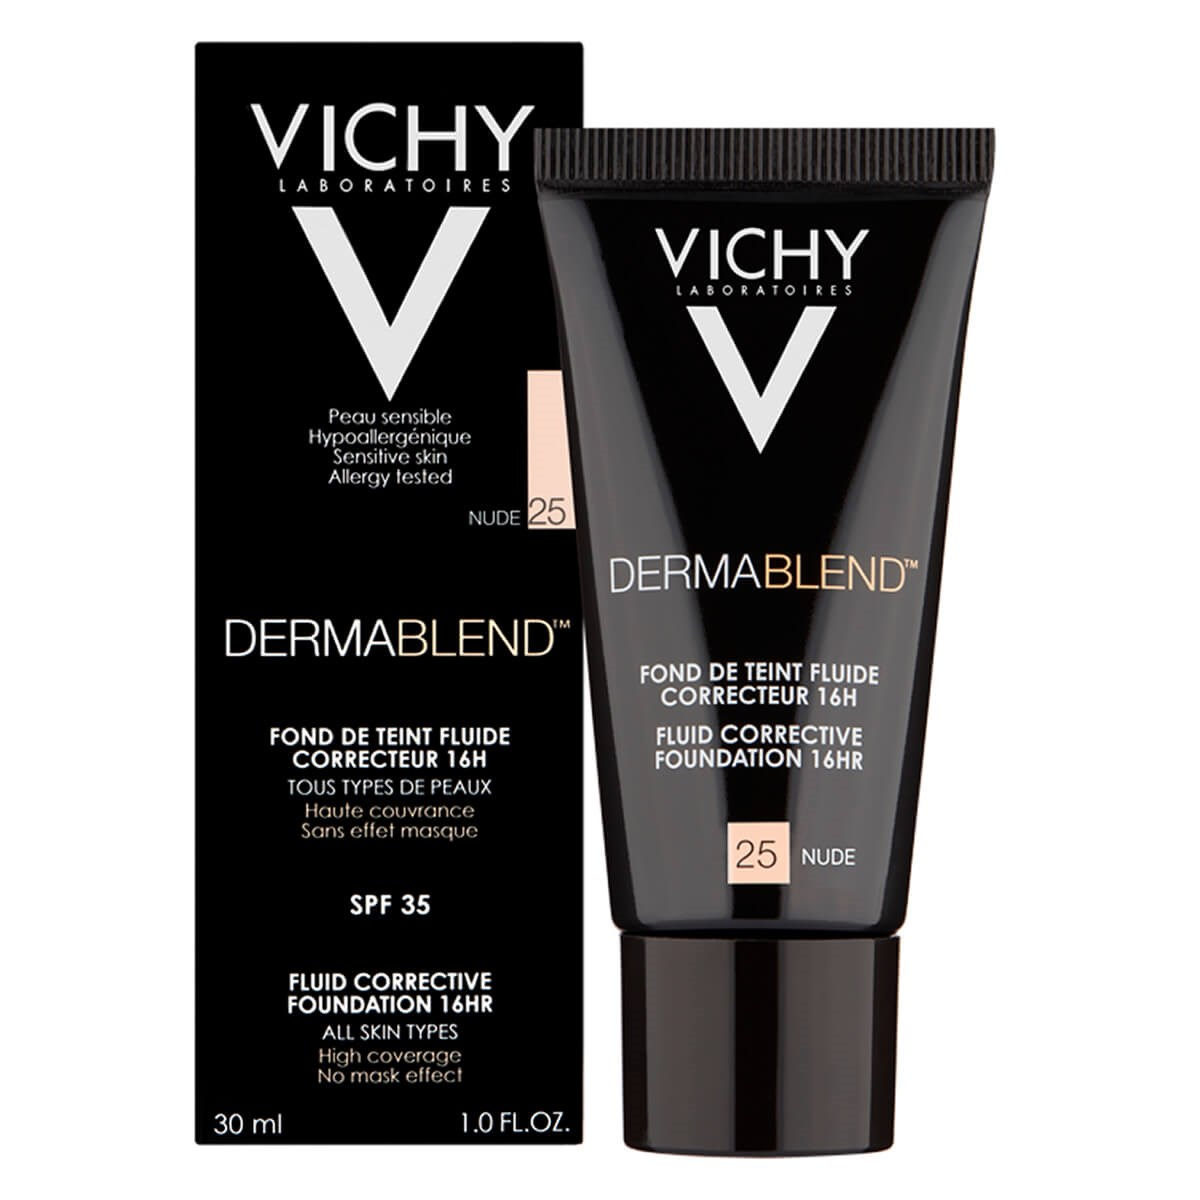 Vichy Dermablend Corrective Foundation